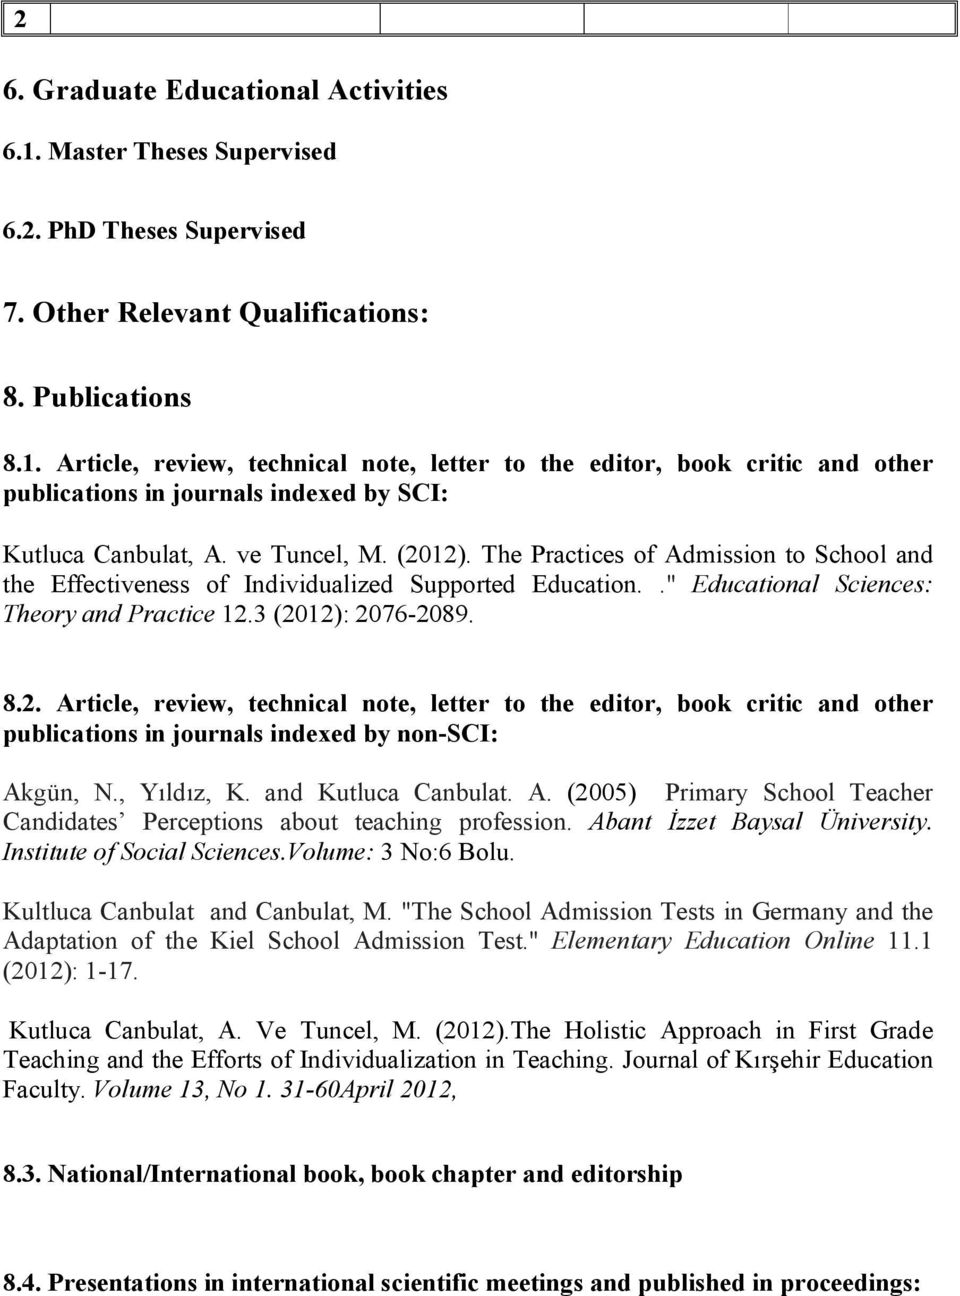 , Yıldız, K. and Kutluca Canbulat. A. (2005) Primary School Teacher Candidates Perceptions about teaching profession. Abant İzzet Baysal Üniversity. Institute of Social Sciences.Volume: 3 No:6 Bolu.